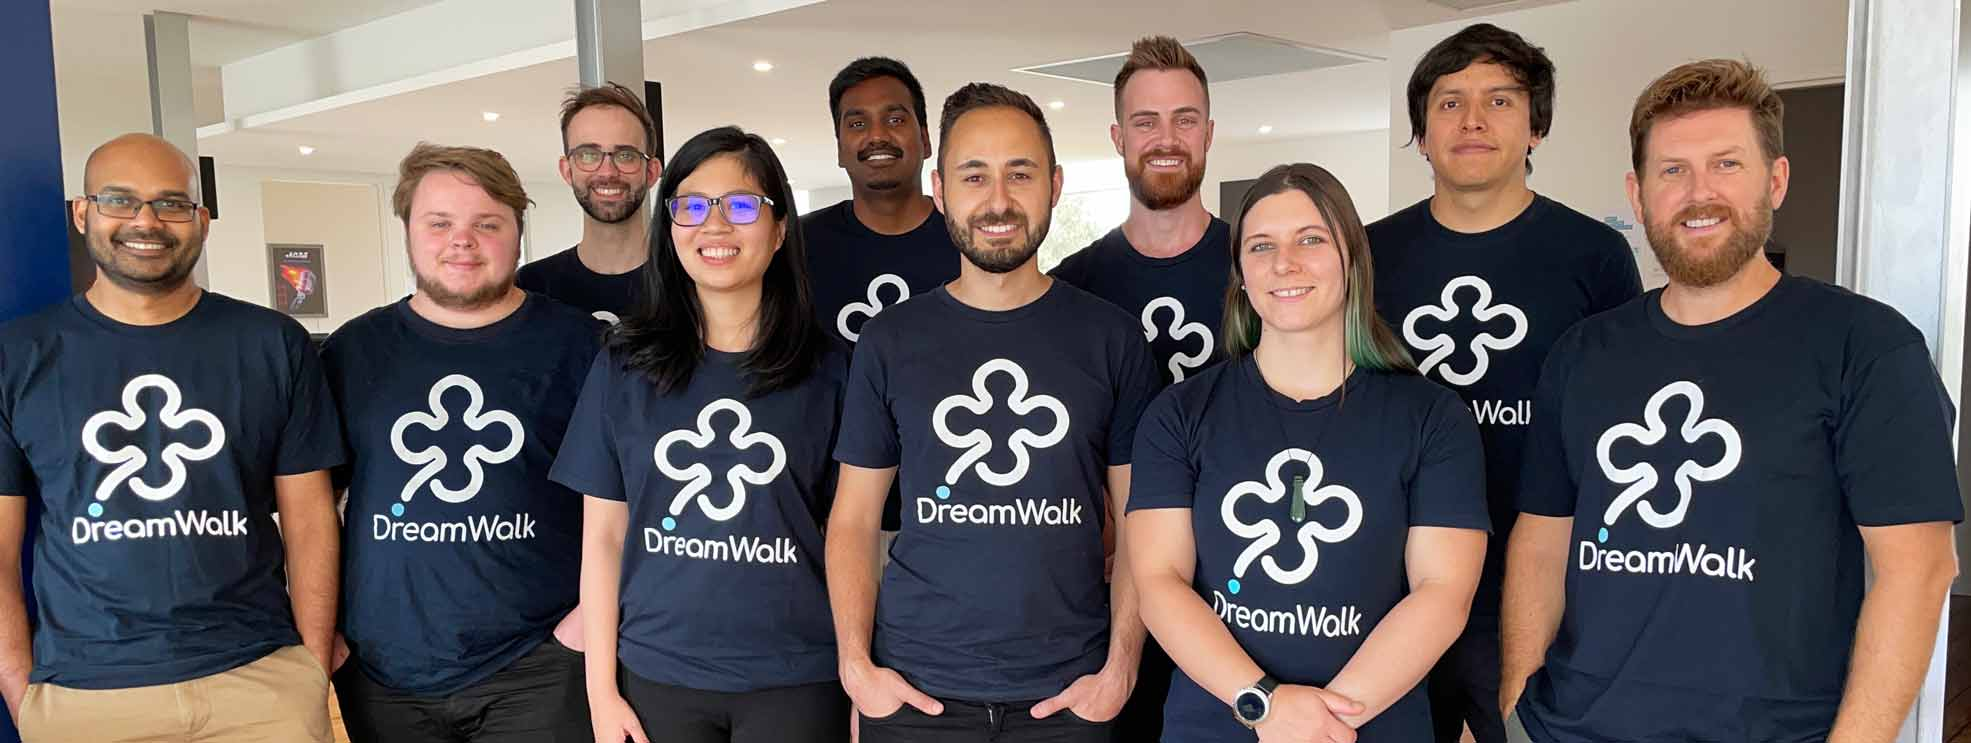 DreamWalk App Development team 2020